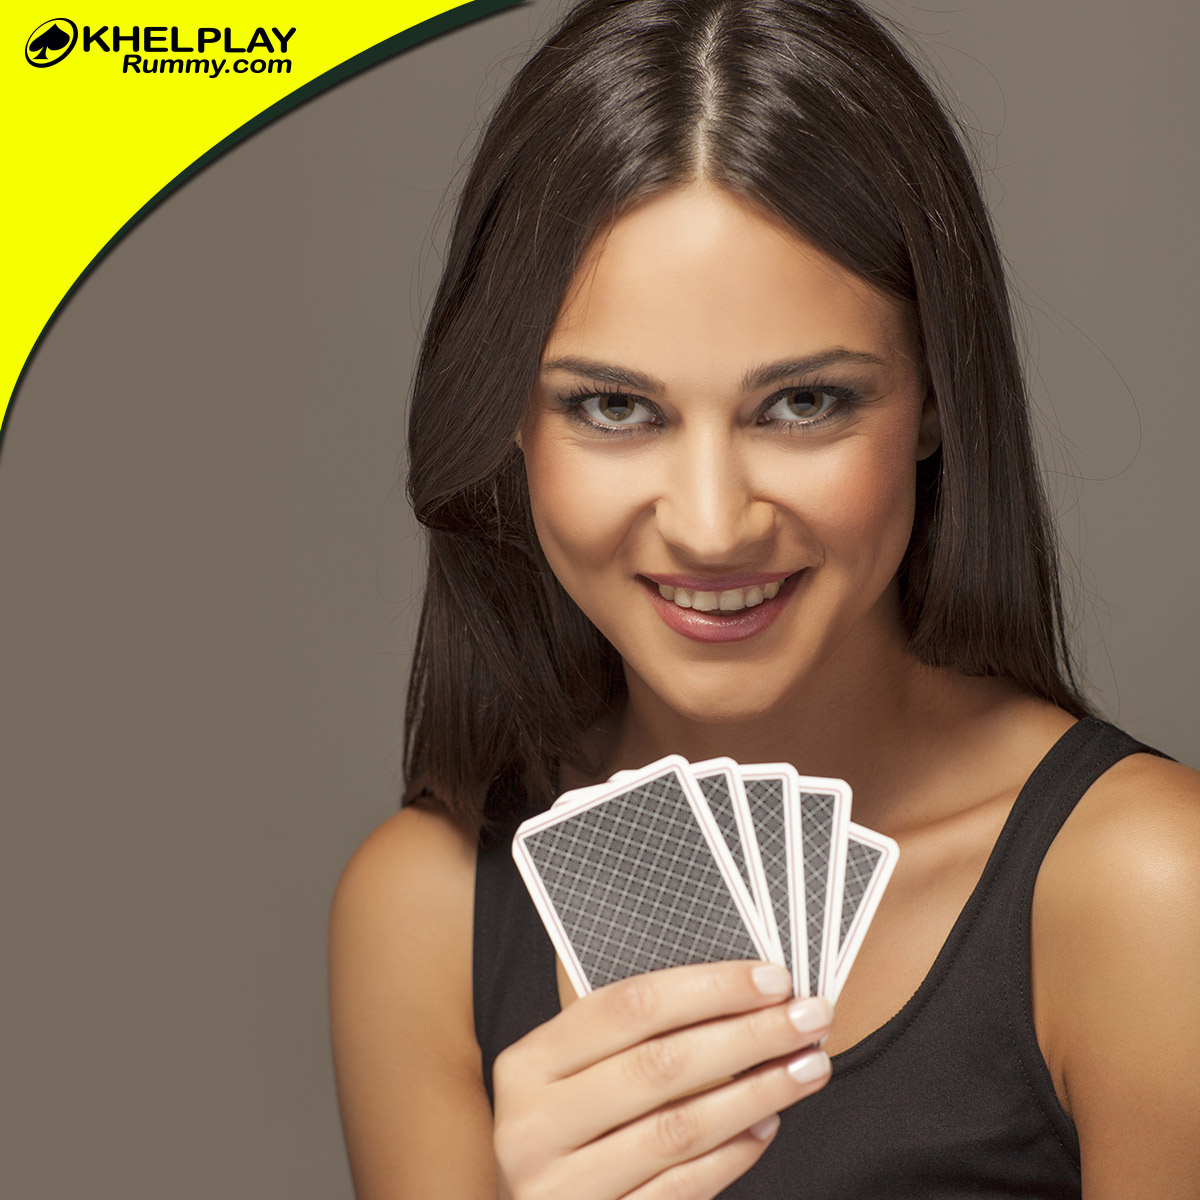 Stages of Learning Rummy Online Gaming on Khelplay Rummy App